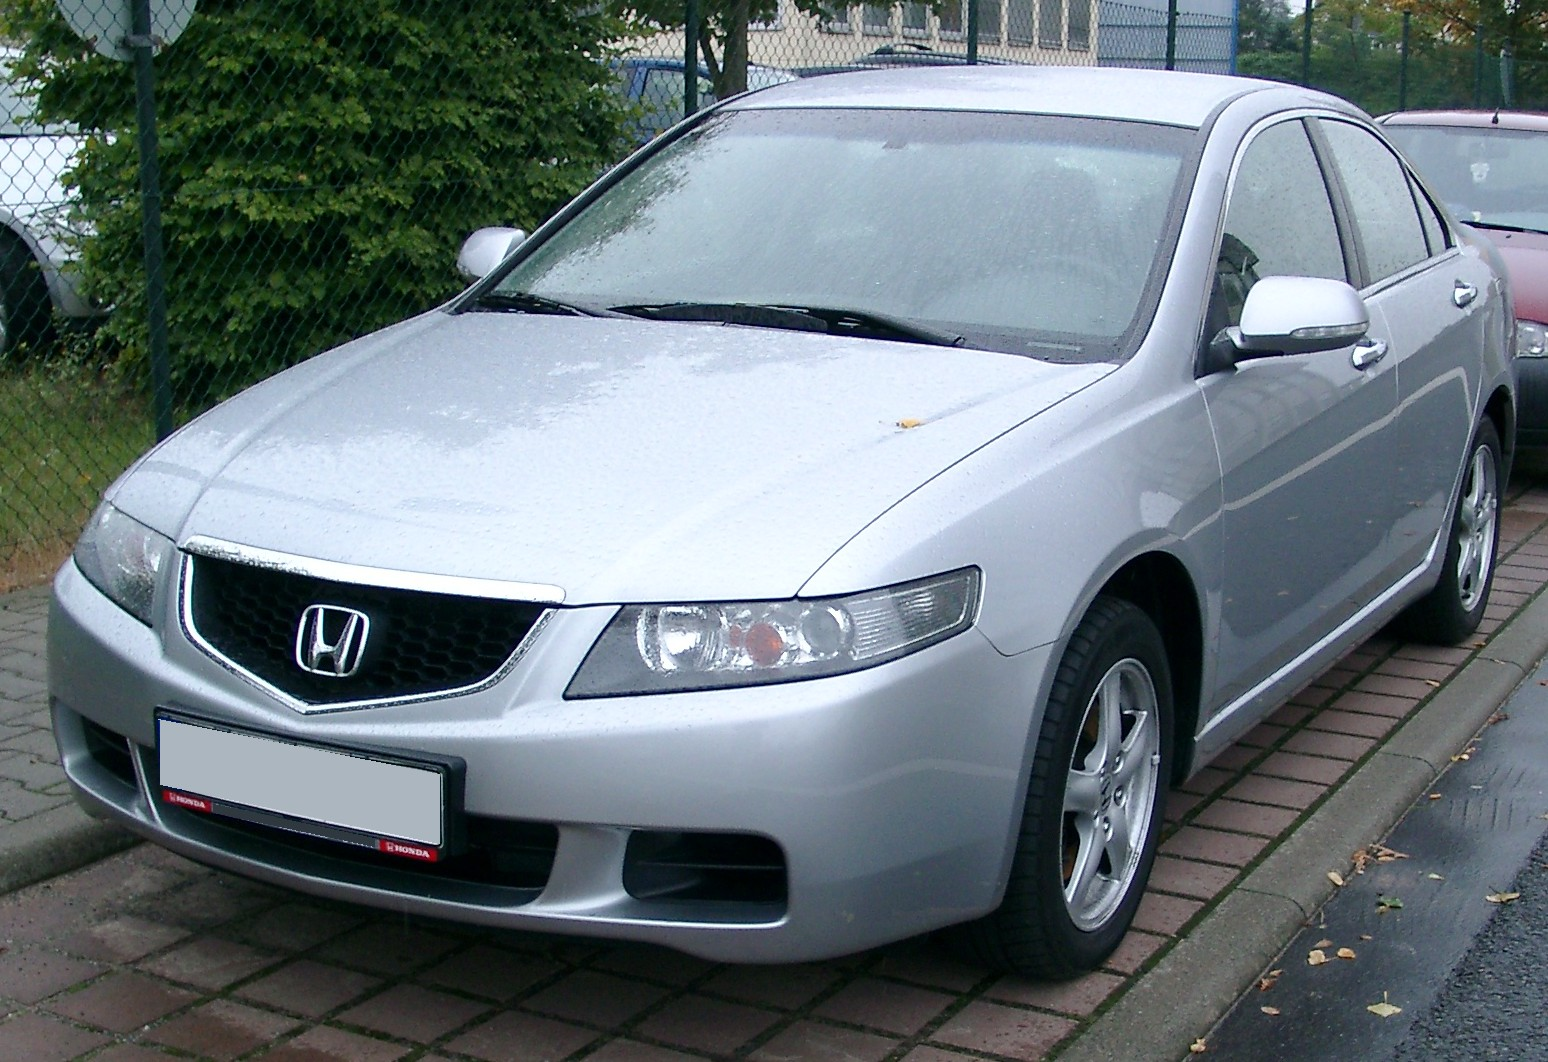 Honda all models honda accord for Honda accord base model